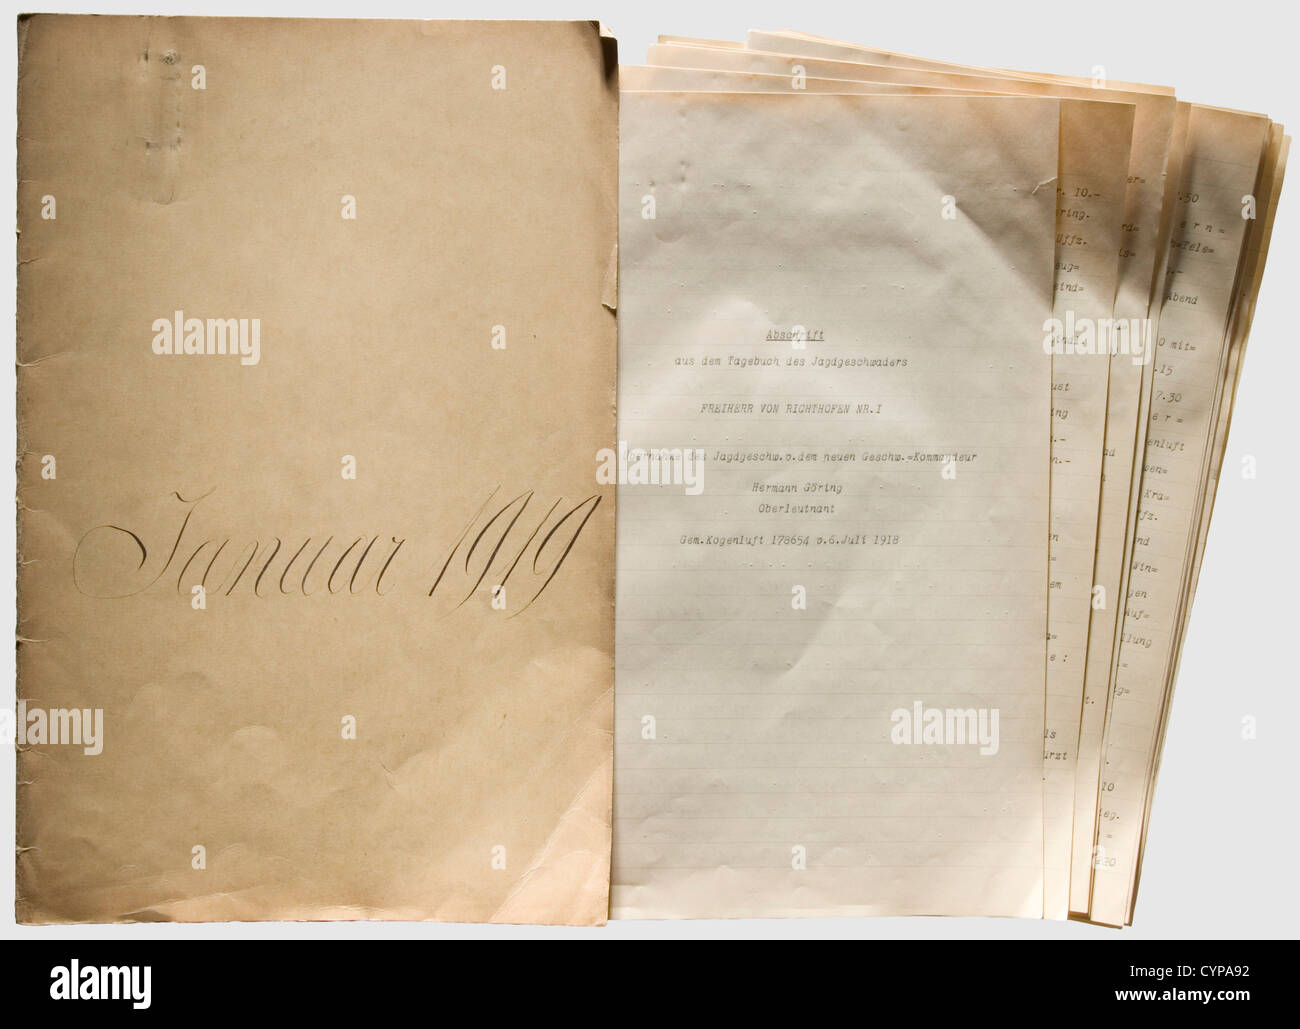 Oberleutenant Hermann Göring - 'Copy from the Diary of the Fighter Squadron Freiherr von Richthofen No. - Stock Image